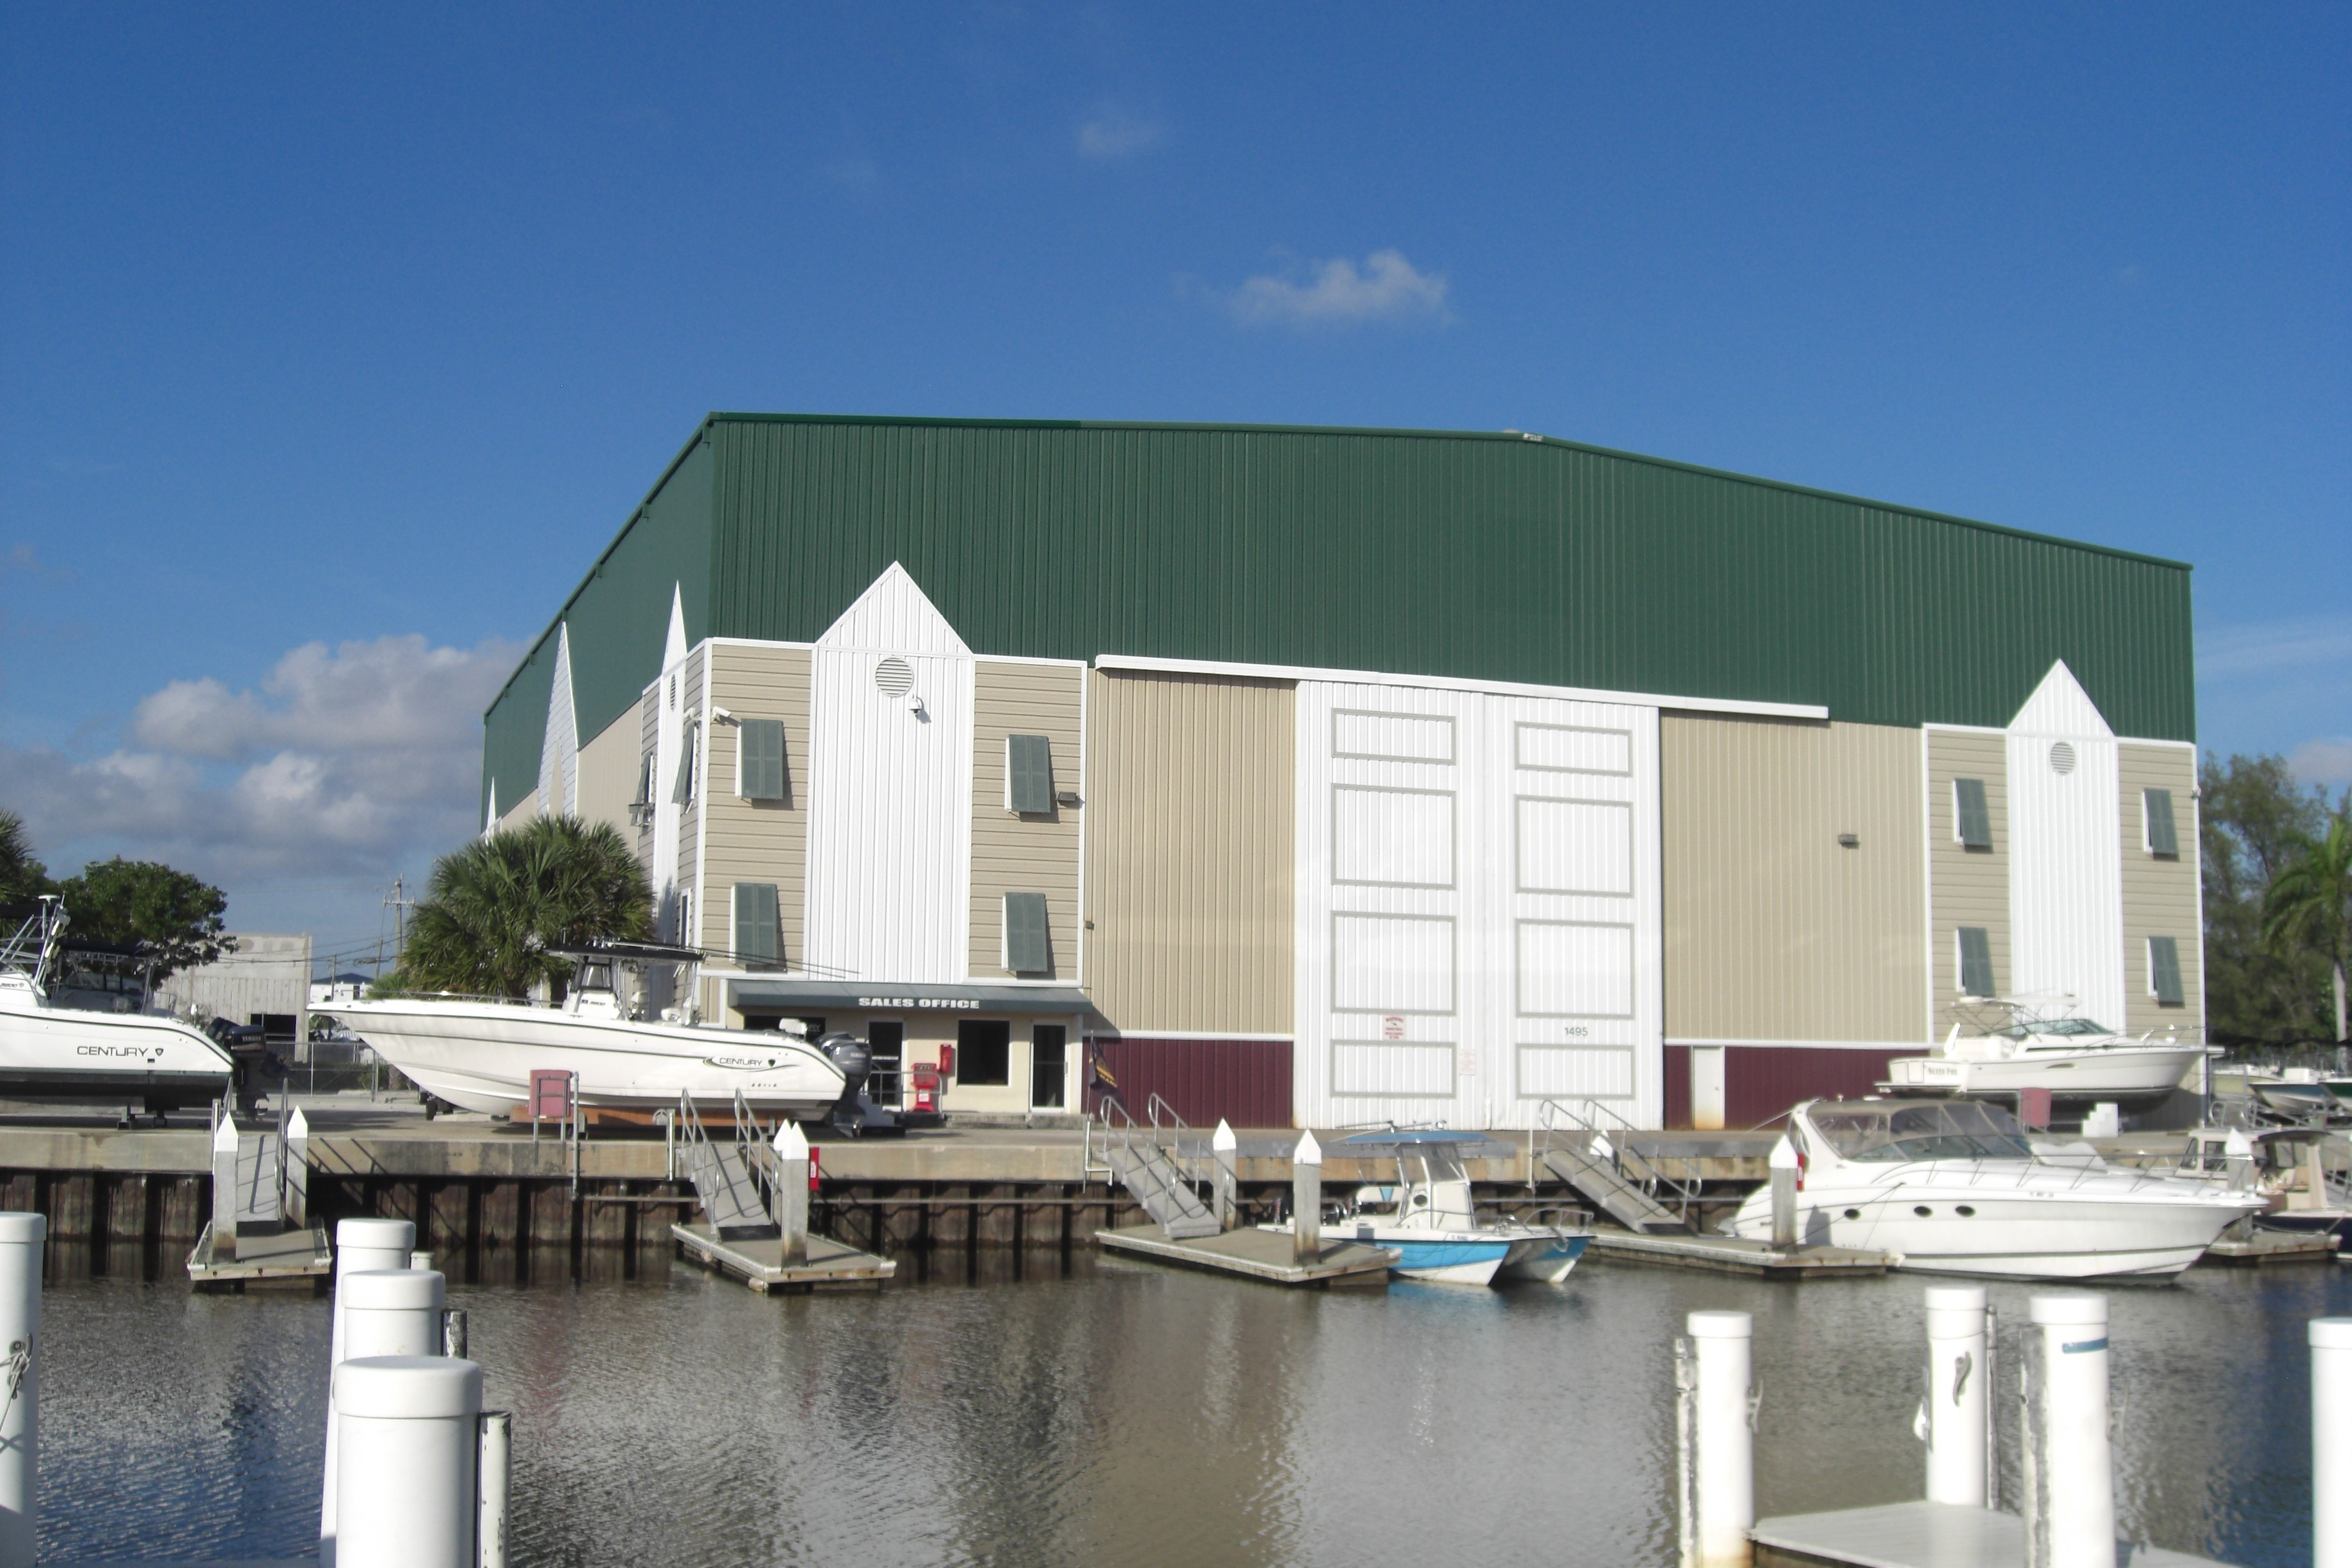 Secure Inside Dry Boat Storage Daily Boat Rentals Boat